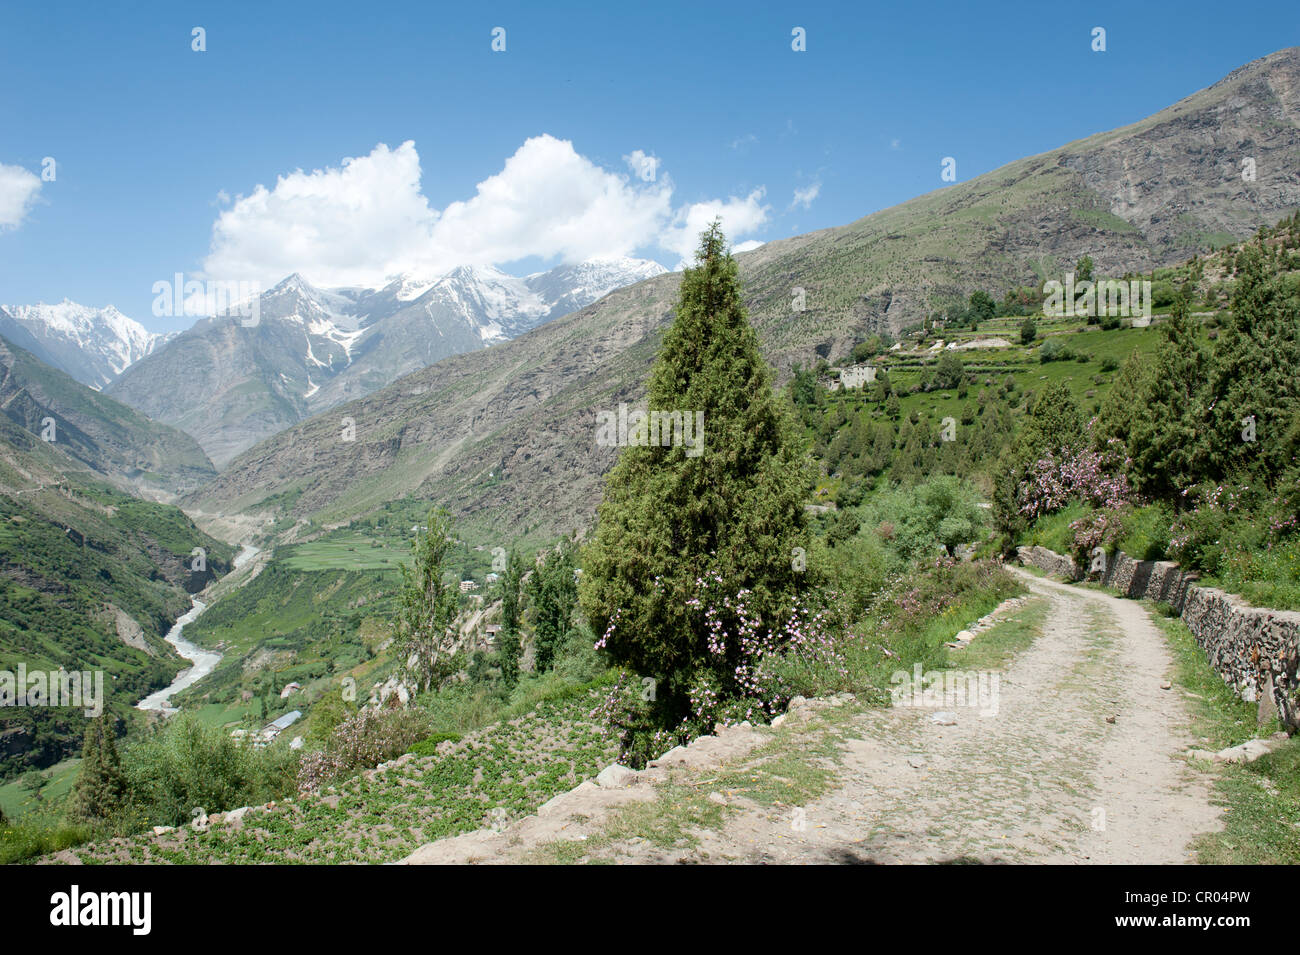 Mountain road in the green valley of Keylong, Lahaul and Spiti district, Himachal Pradesh, India, South Asia, Asia - Stock Image